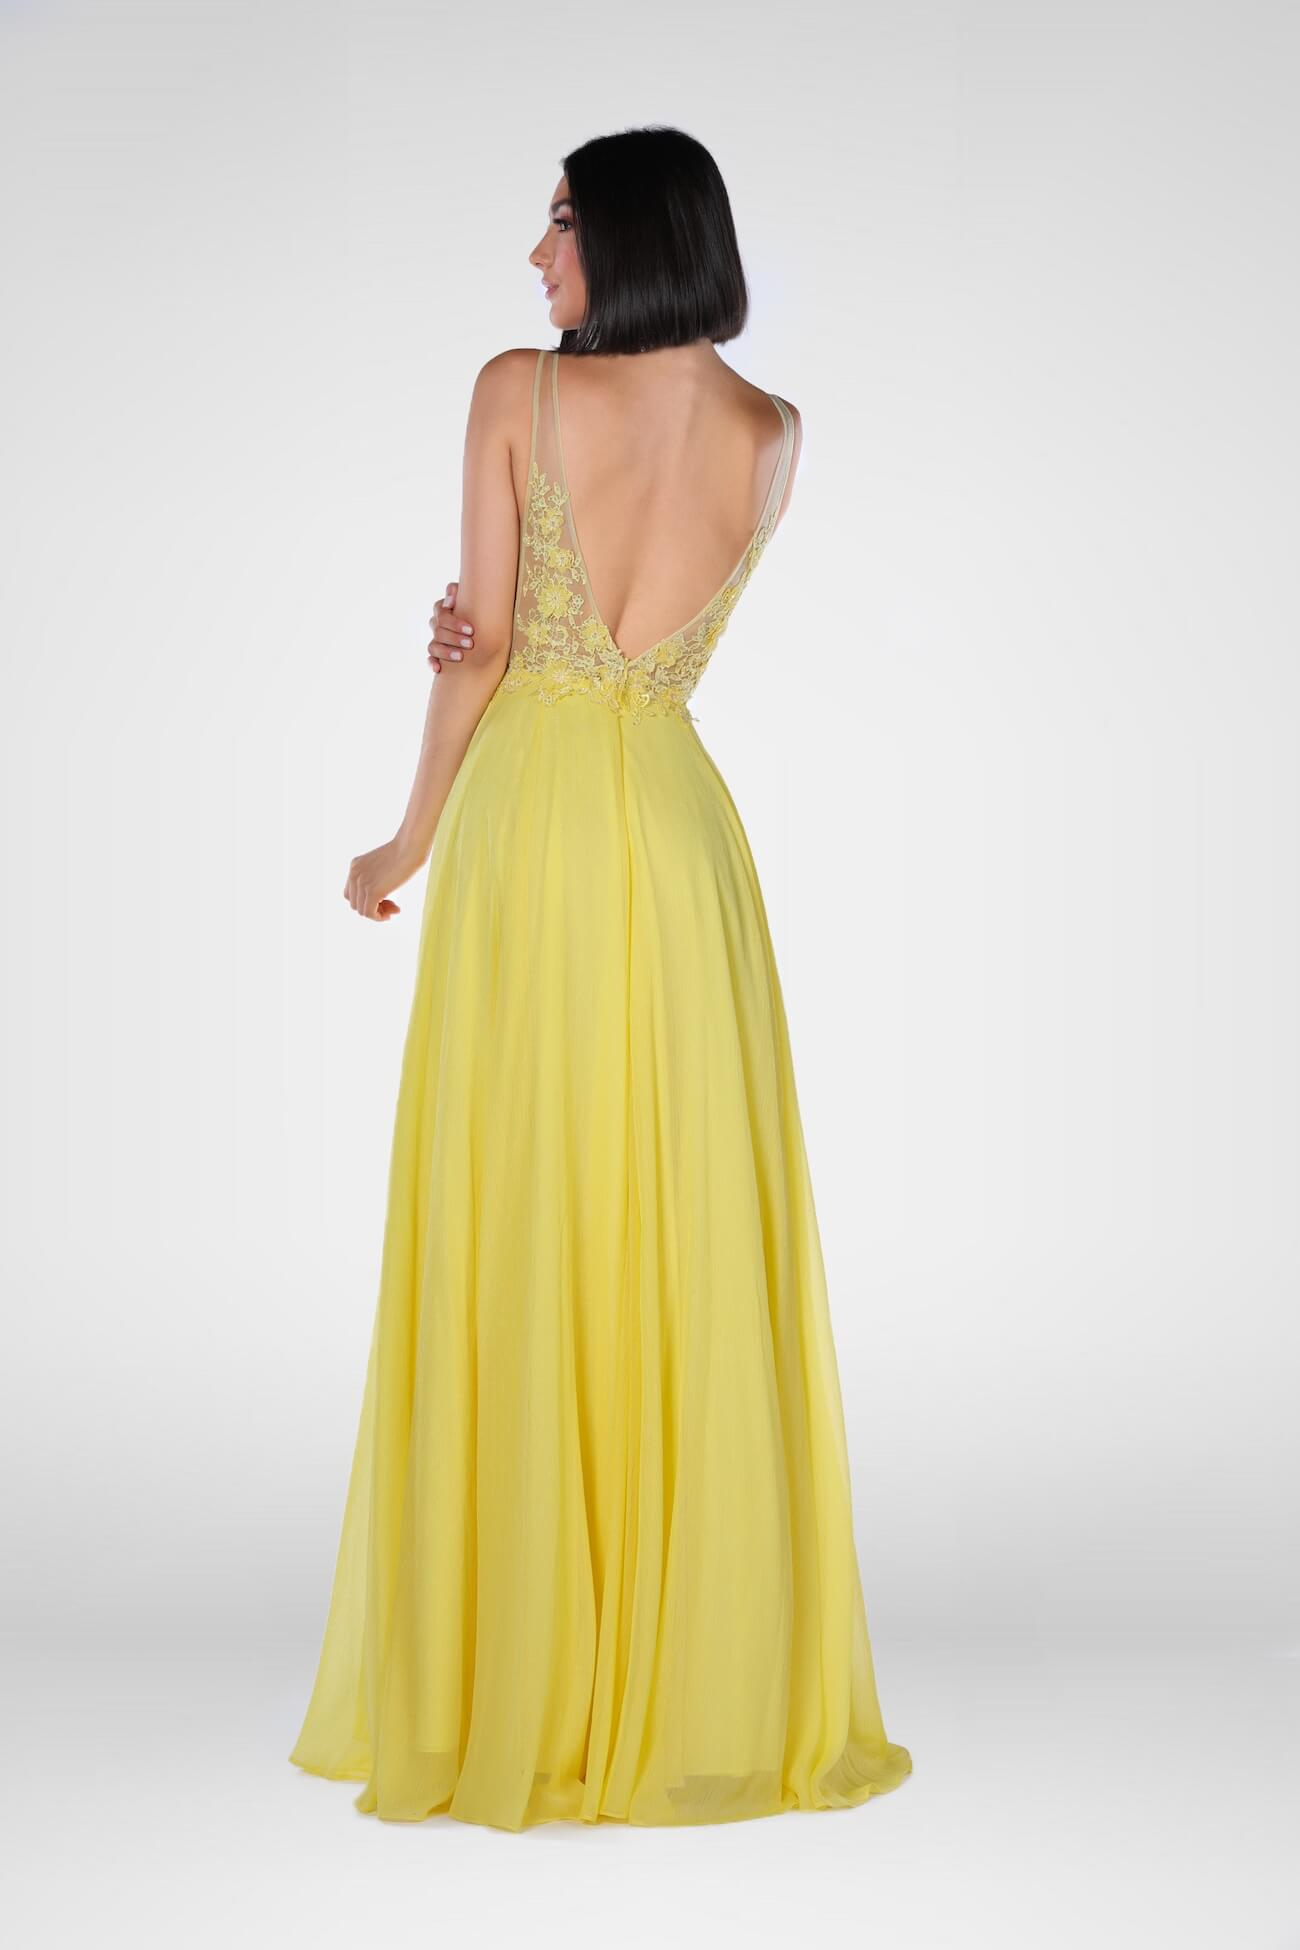 Vienna Yellow Size 2 Plunge Backless A-line Dress on Queenly